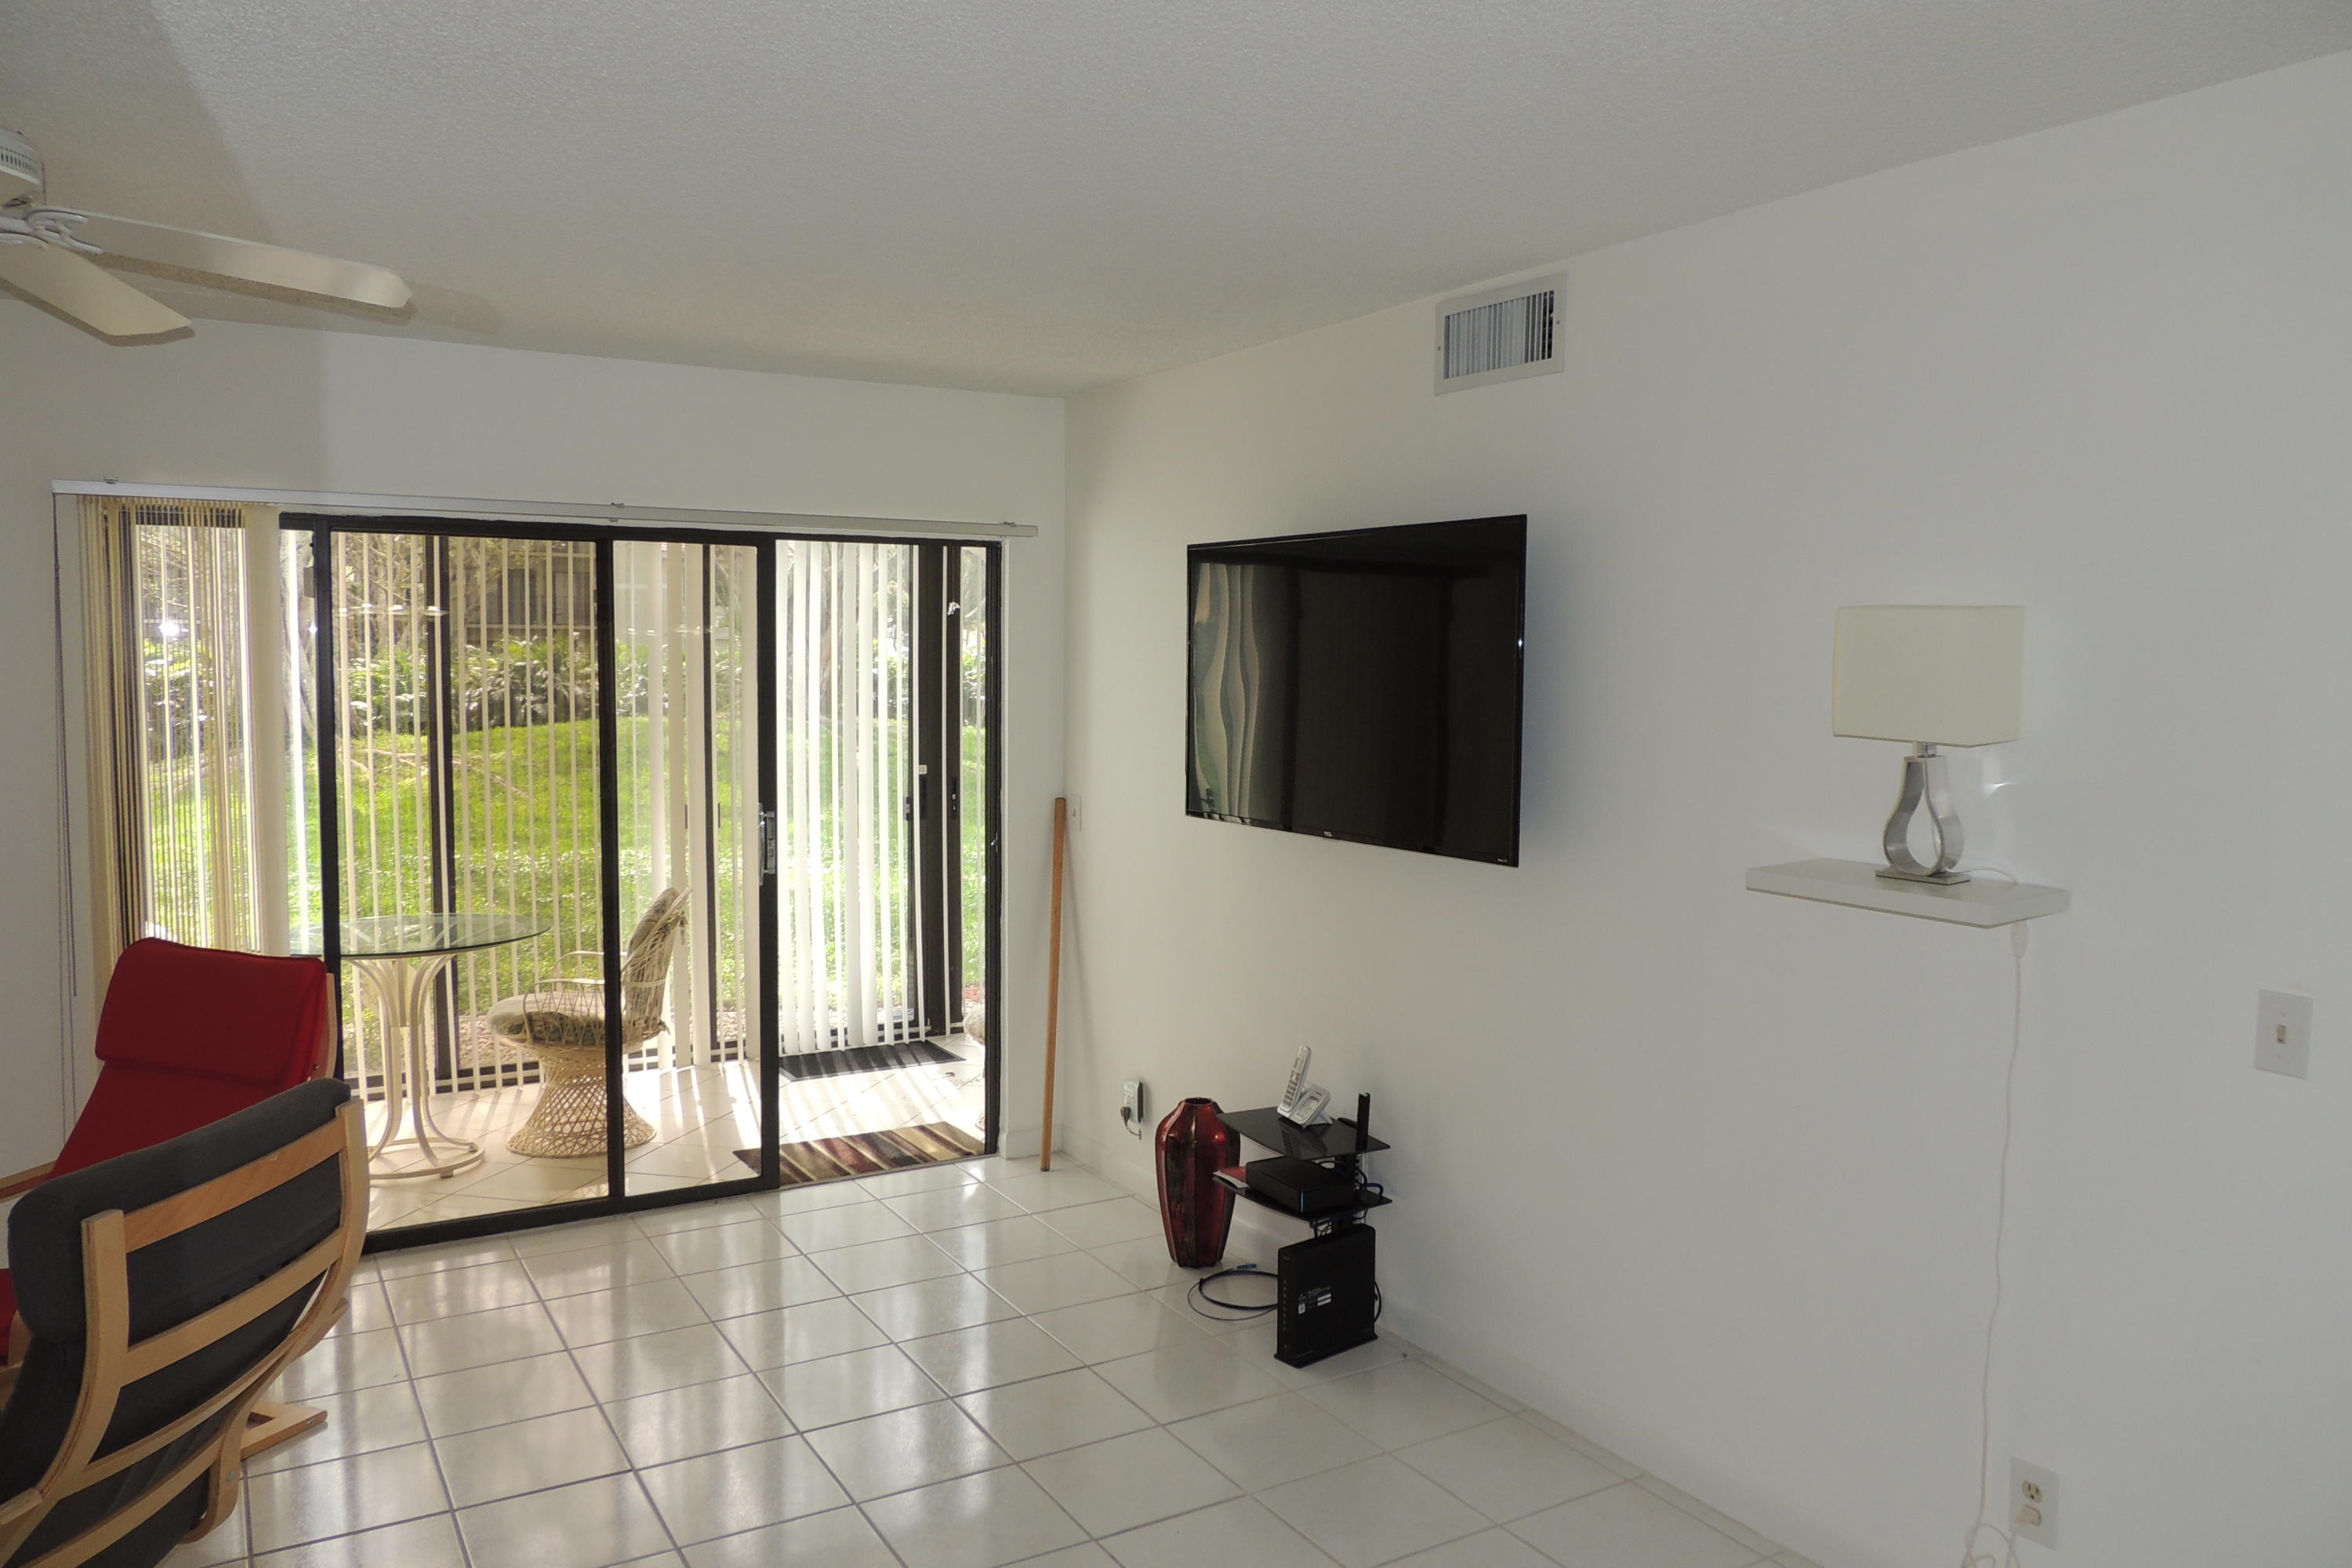 5068 Rose Hill Drive 106 Boynton Beach, FL 33437 small photo 9